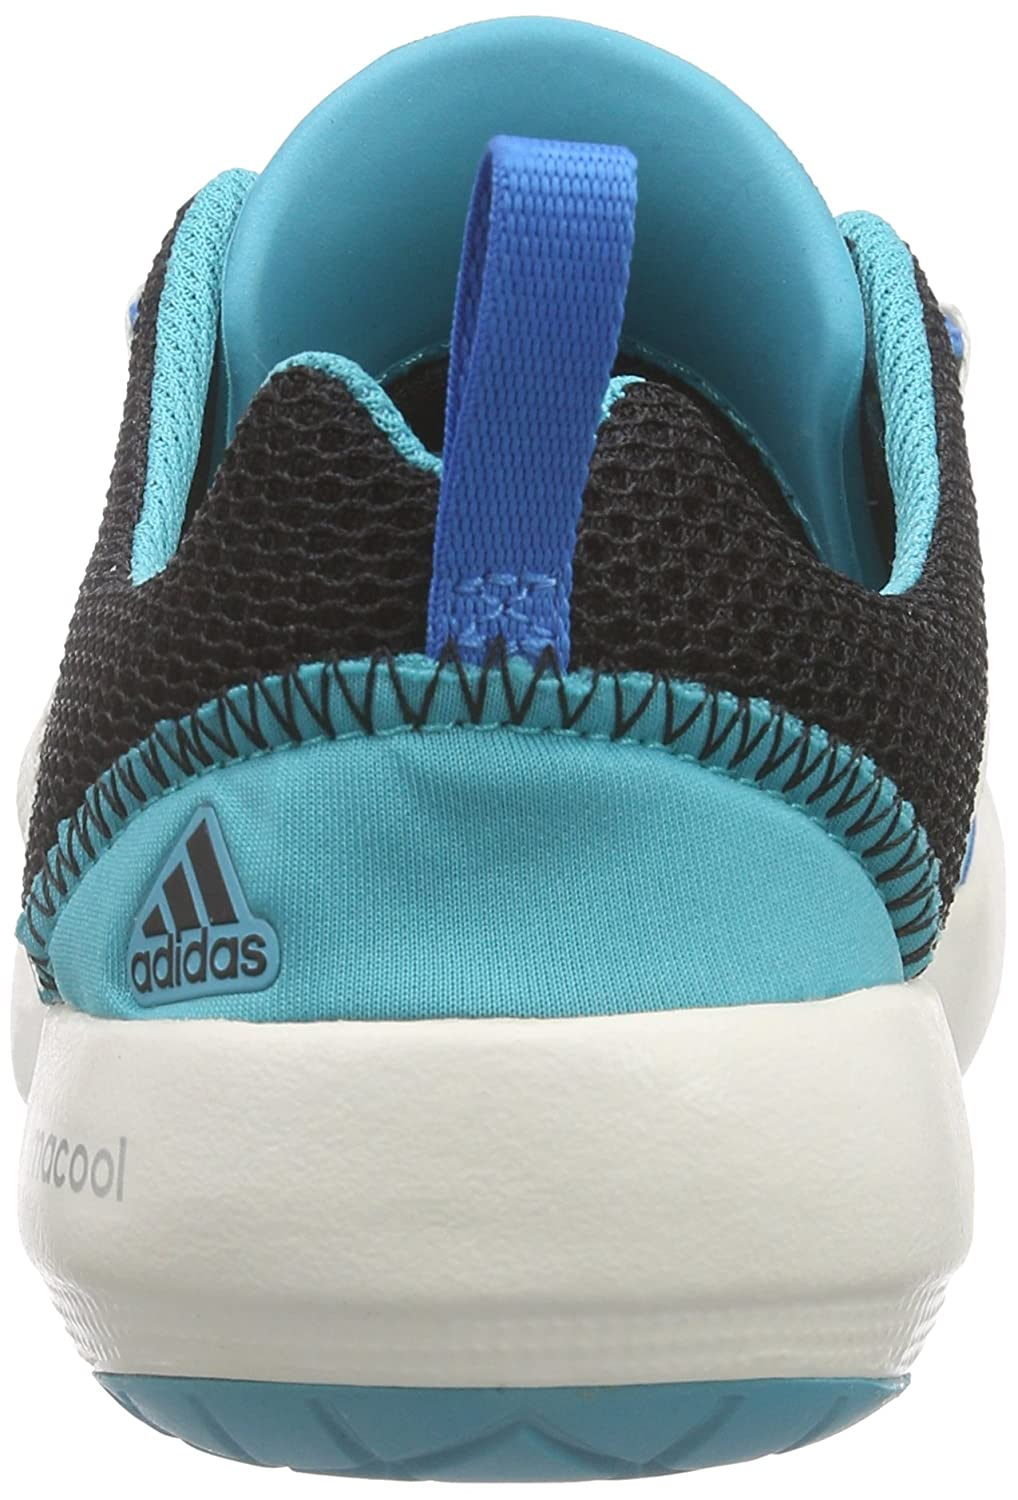 adidas climacool boat lace